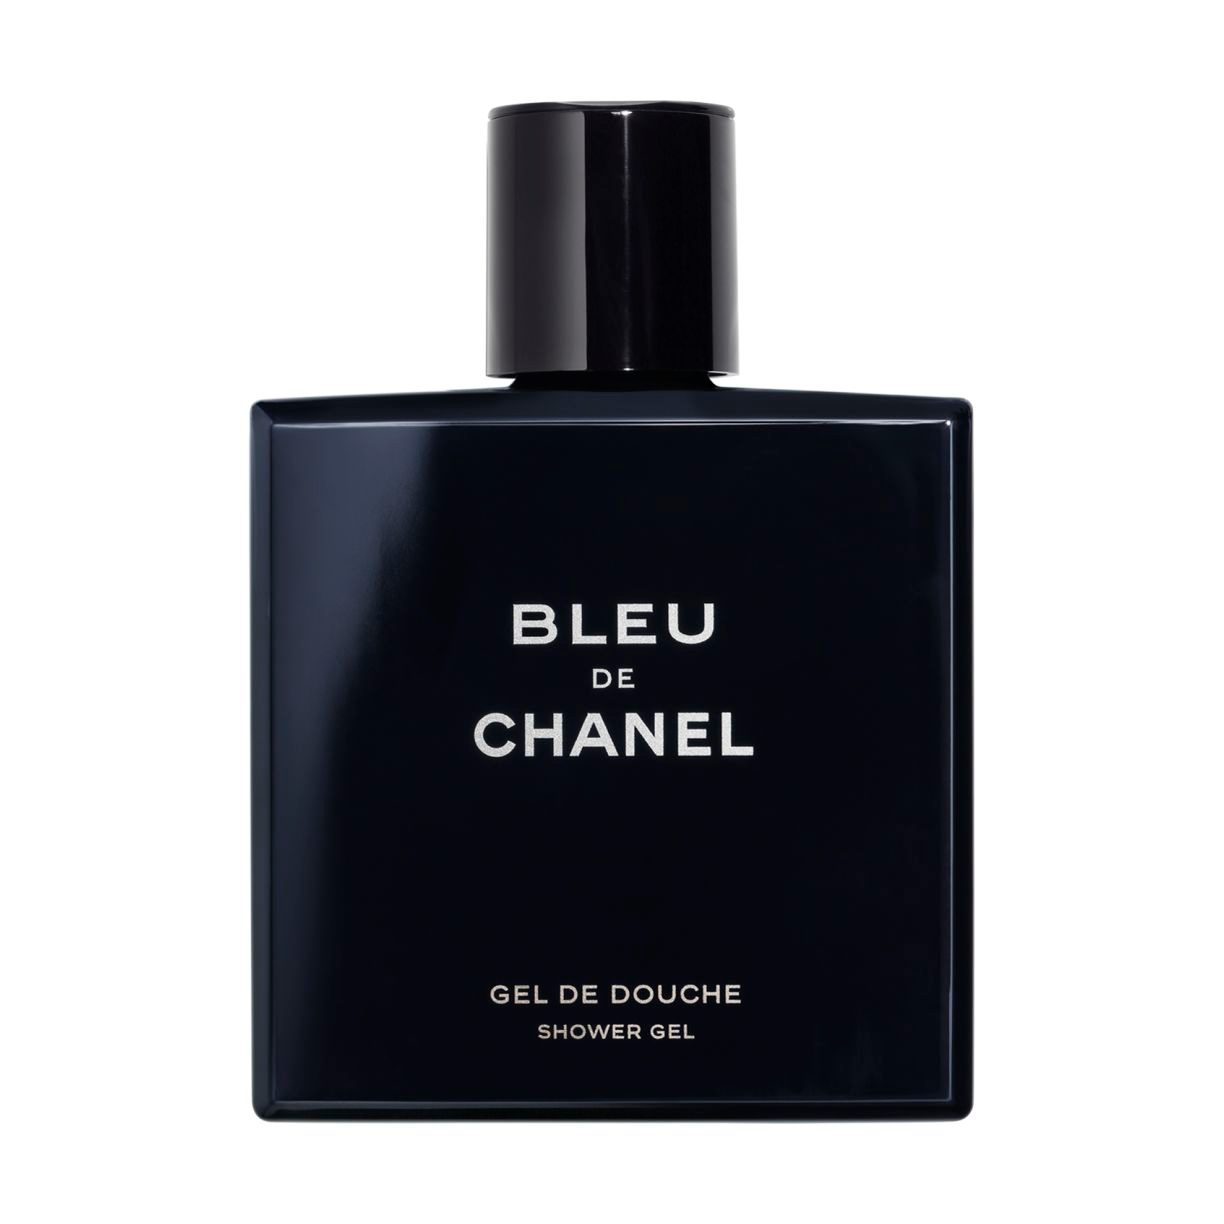 BLEU DE CHANEL SHOWER GEL - เจลอาบน้ำ 200ml